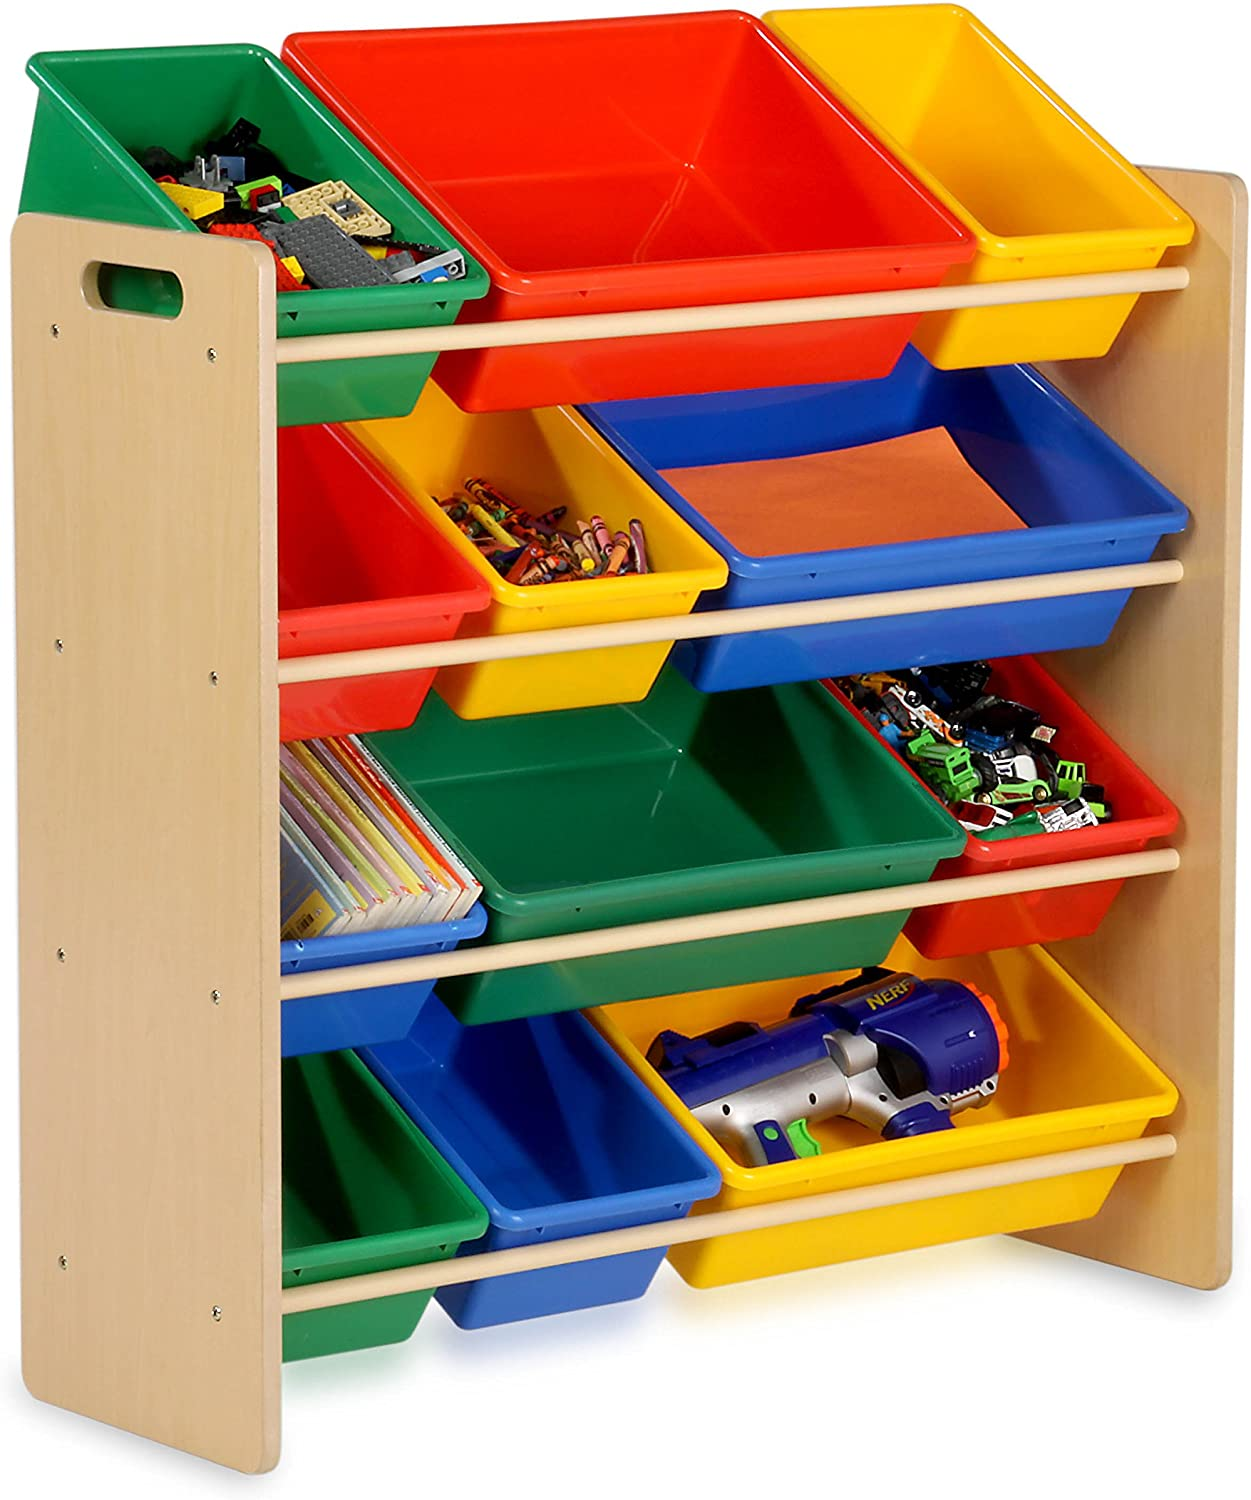 Top 9 Best Toy Storage Organizer (2020 Reviews & Guide) 8